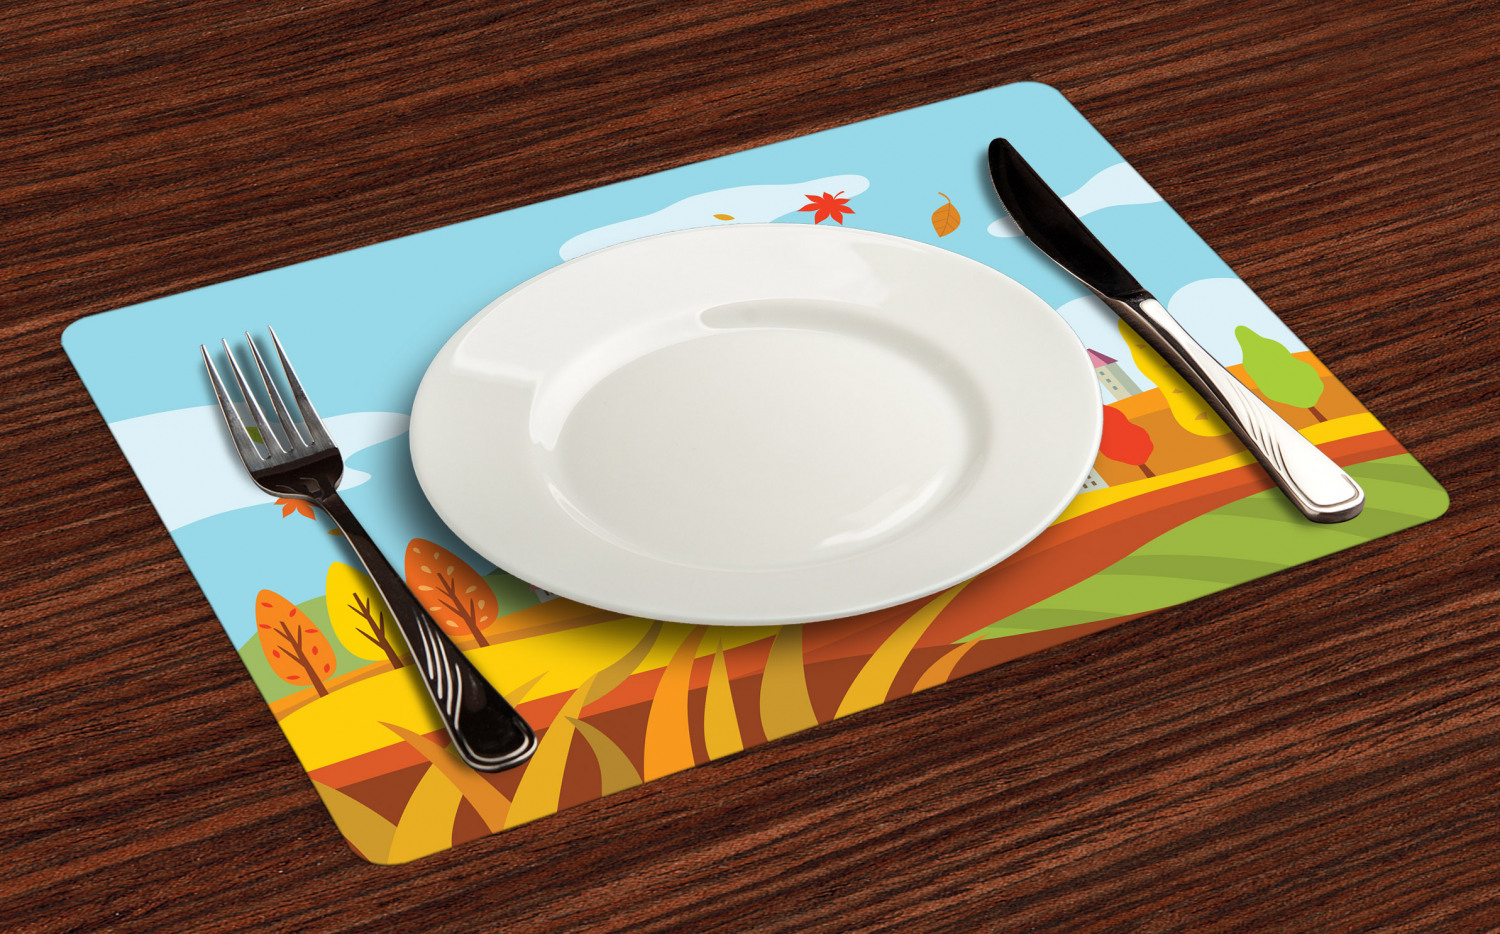 Ambesonne-Fabric-Place-Mats-Set-of-4-Placemats-for-Dining-Room-and-Kitchen-Table thumbnail 189